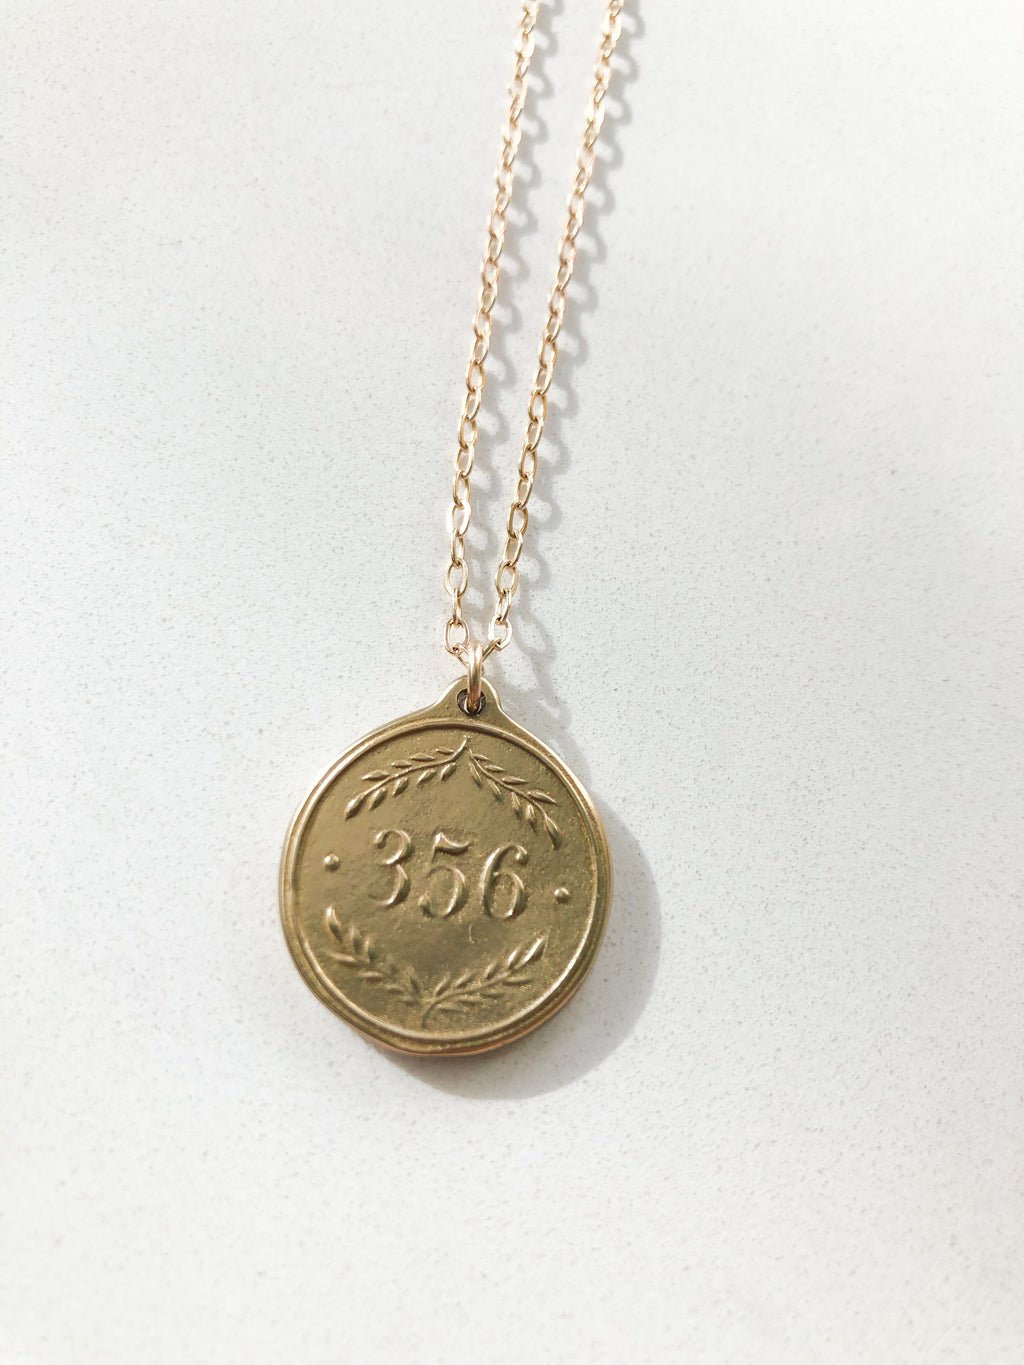 Long Pendant Necklace Proverbs 3:5-6